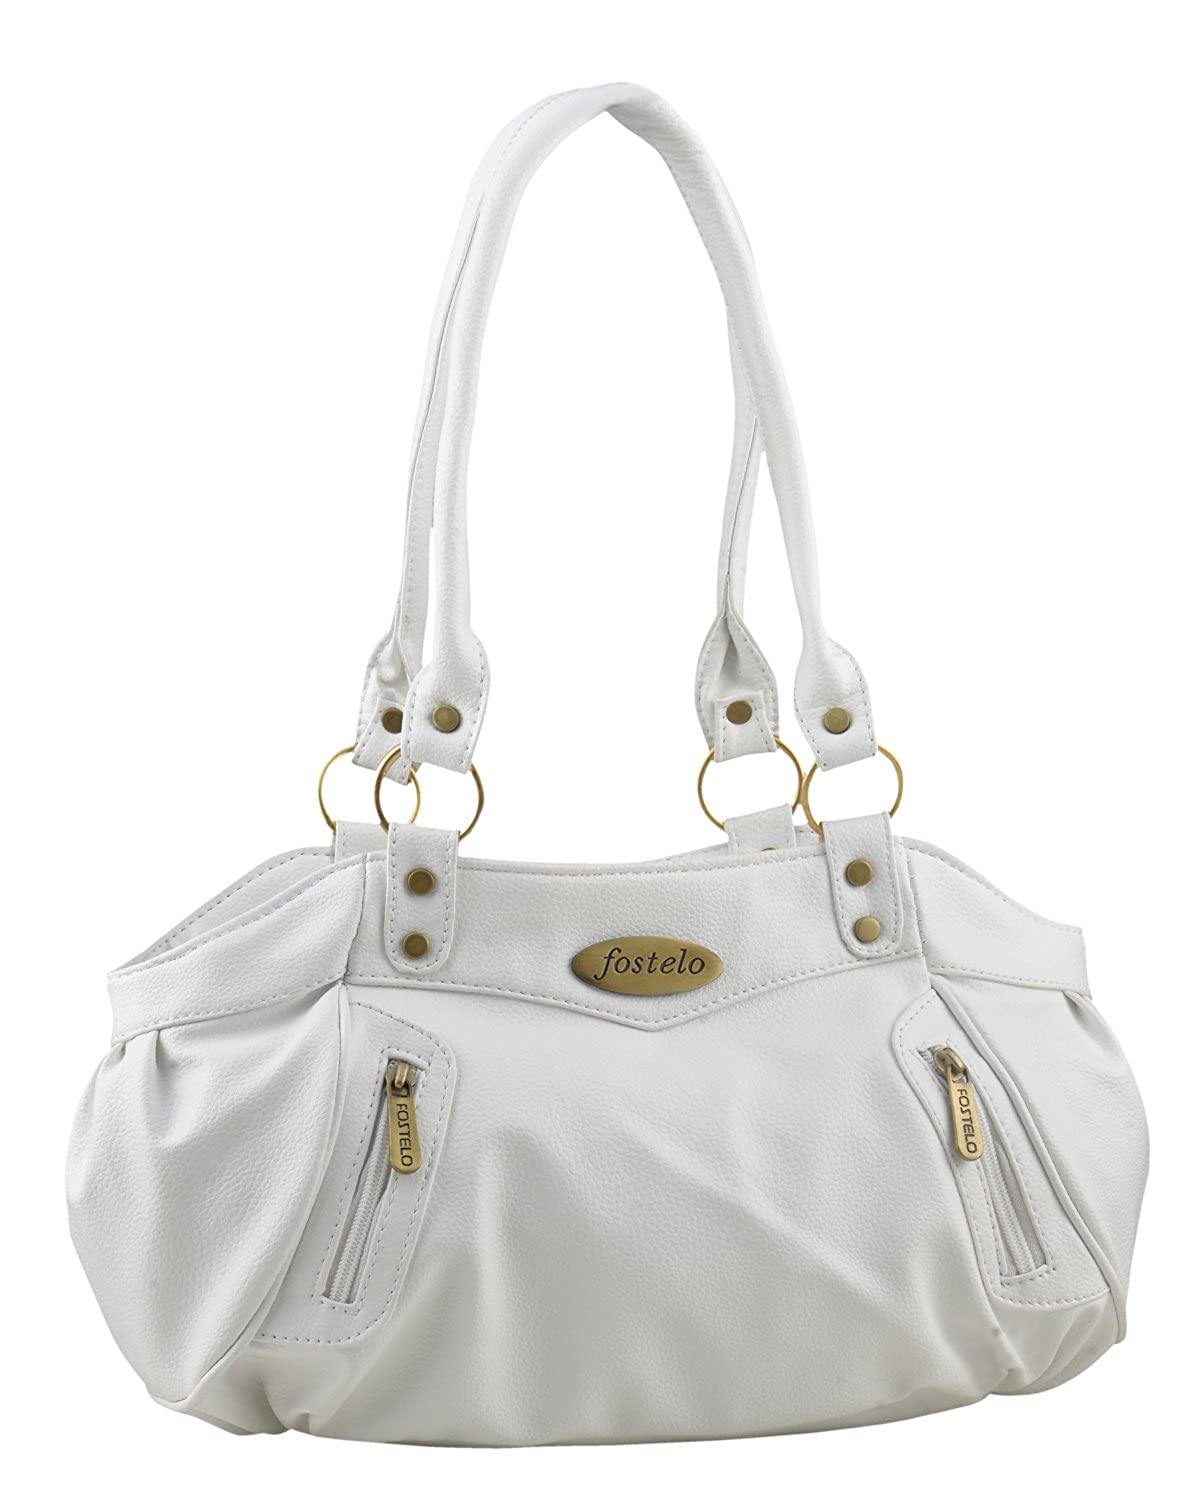 d72c2b3be70a8 Fostelo Women's Handbag (White) (FSB-145): Amazon.in: Shoes & Handbags